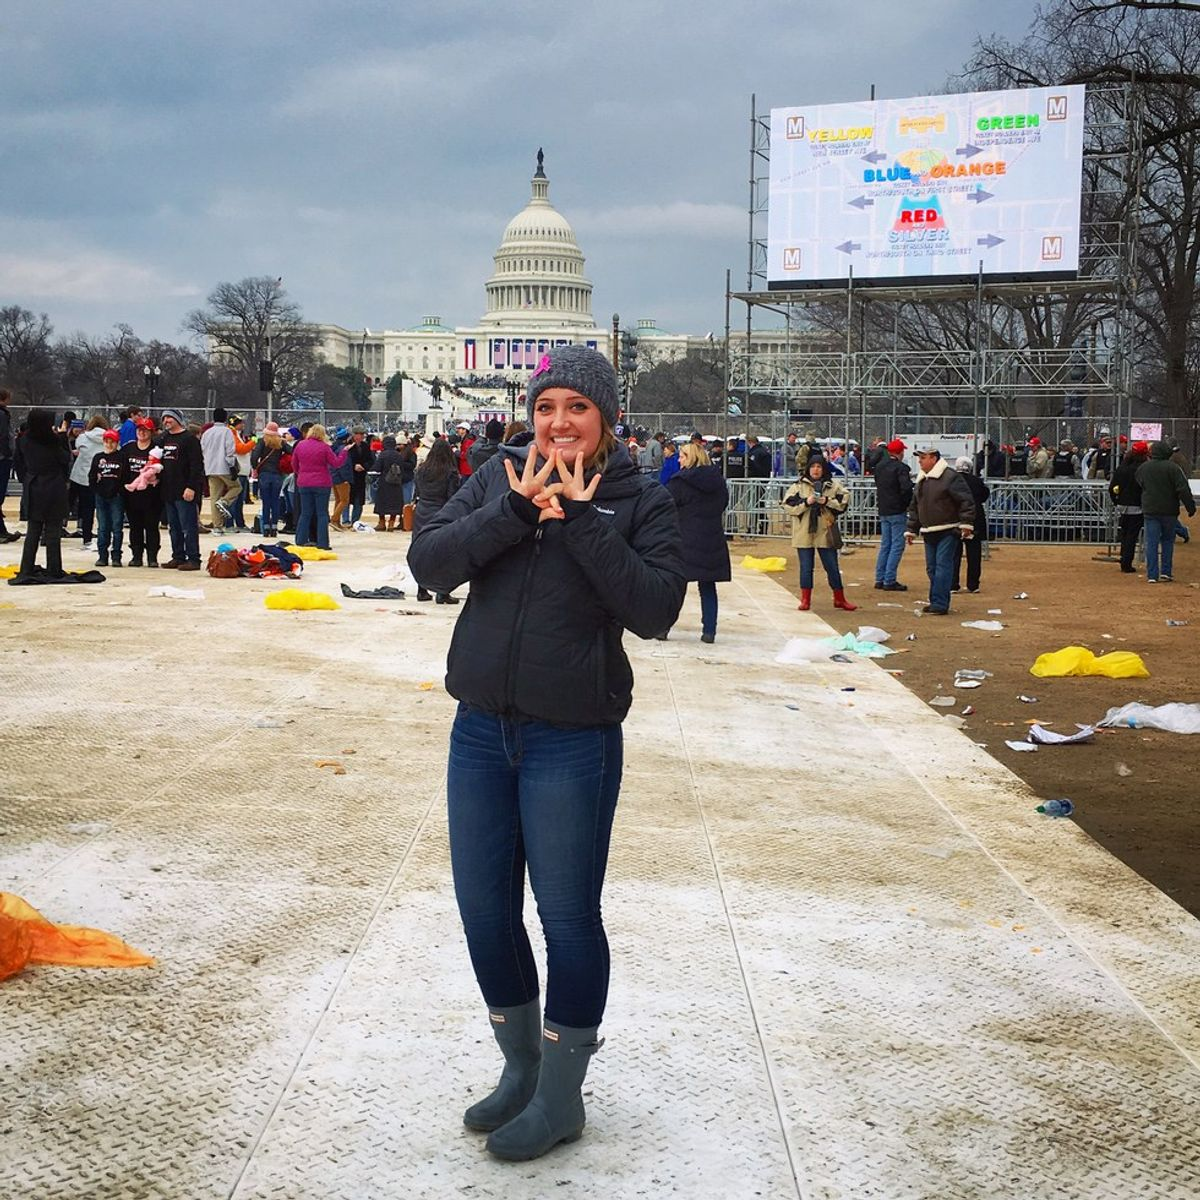 Presidential Inauguration: What The Media Doesn't Show You